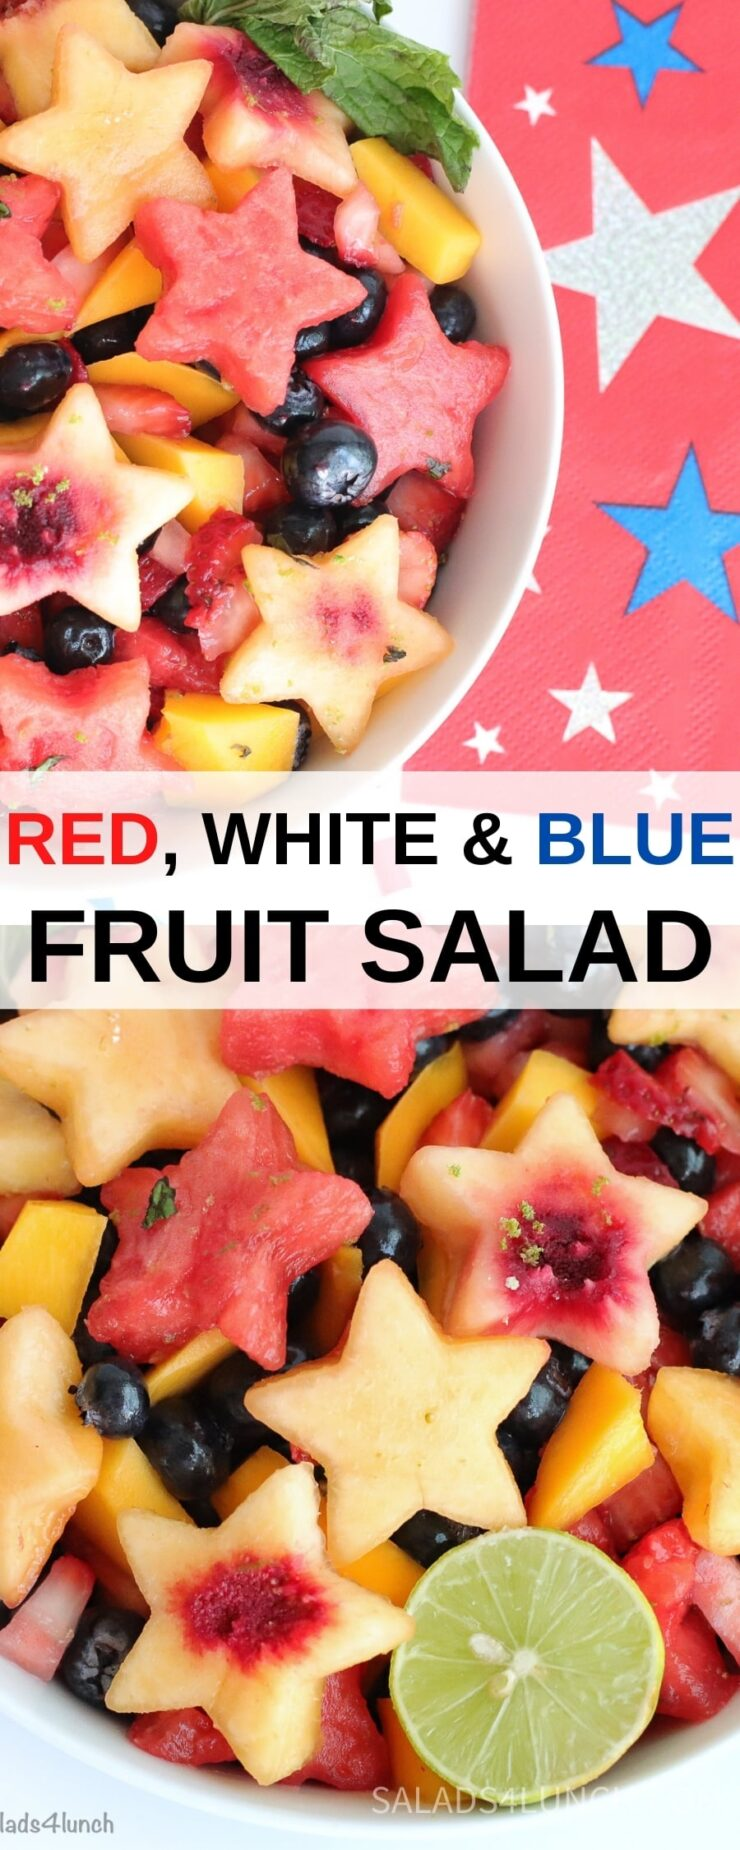 "Collage of overhead photos of a beautiful fruit salad with watermelon and peaches cut into stars, mango and blueberries with text overlay that says: Red, White and Blue Fruit Salad""."